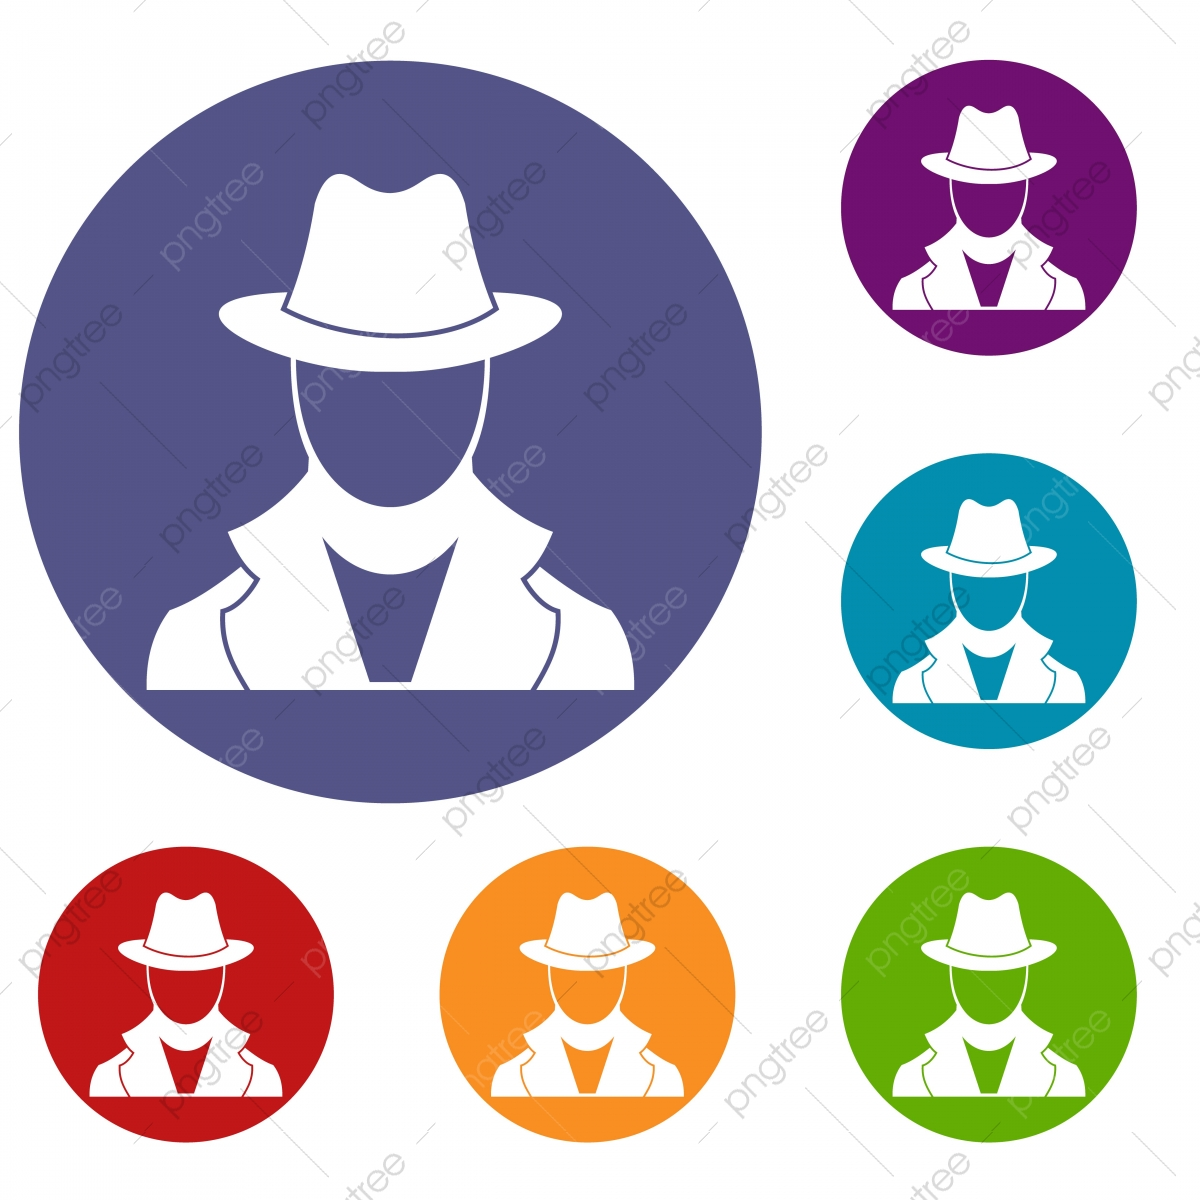 spy png images vector and psd files free download on pngtree https pngtree com freepng spy icons set 5310628 html